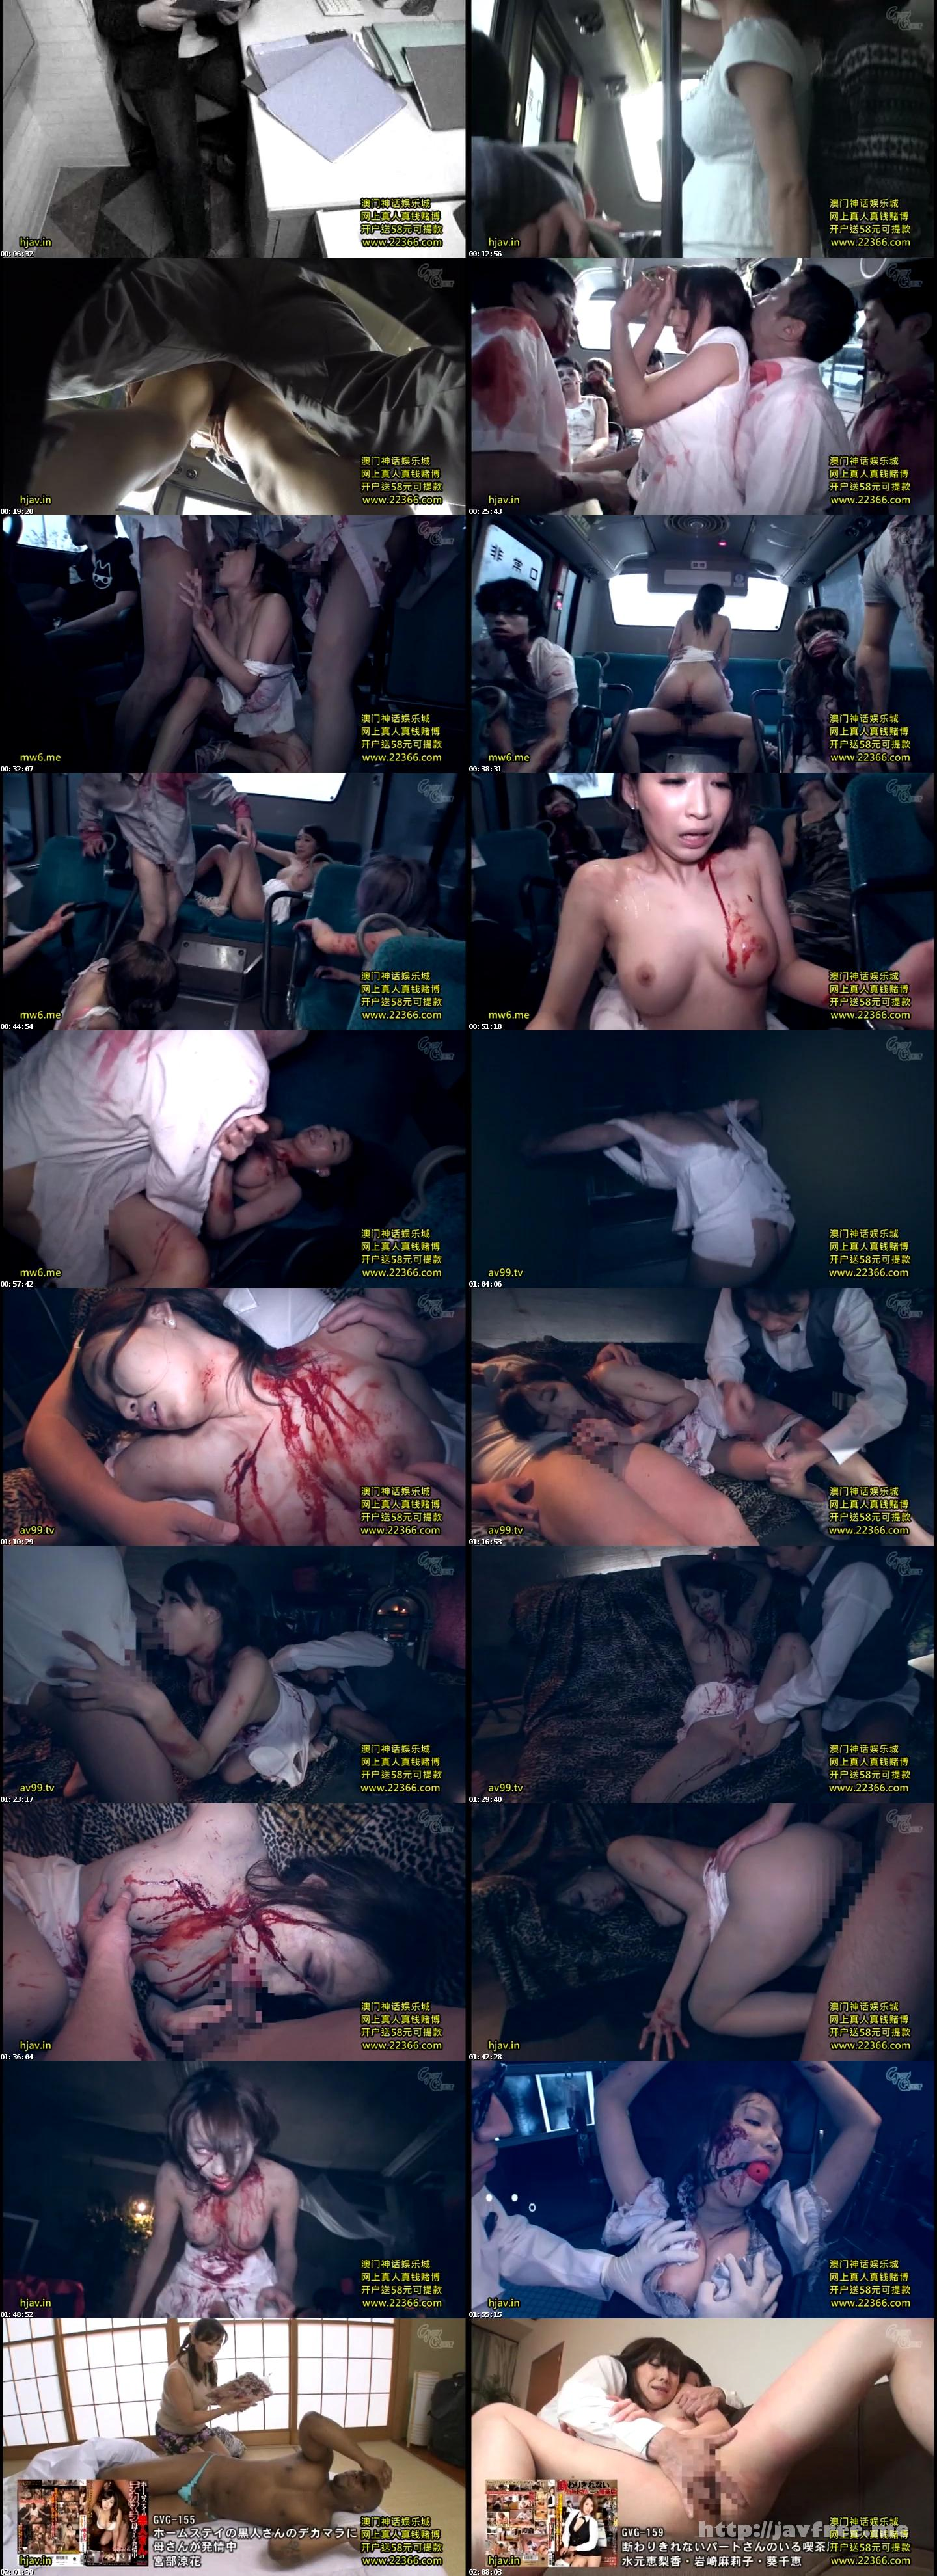 [GVG-164] SEX OF THE DEAD 巨乳ゾンビガール 3 蓮実クレア - image GVG-164 on https://javfree.me